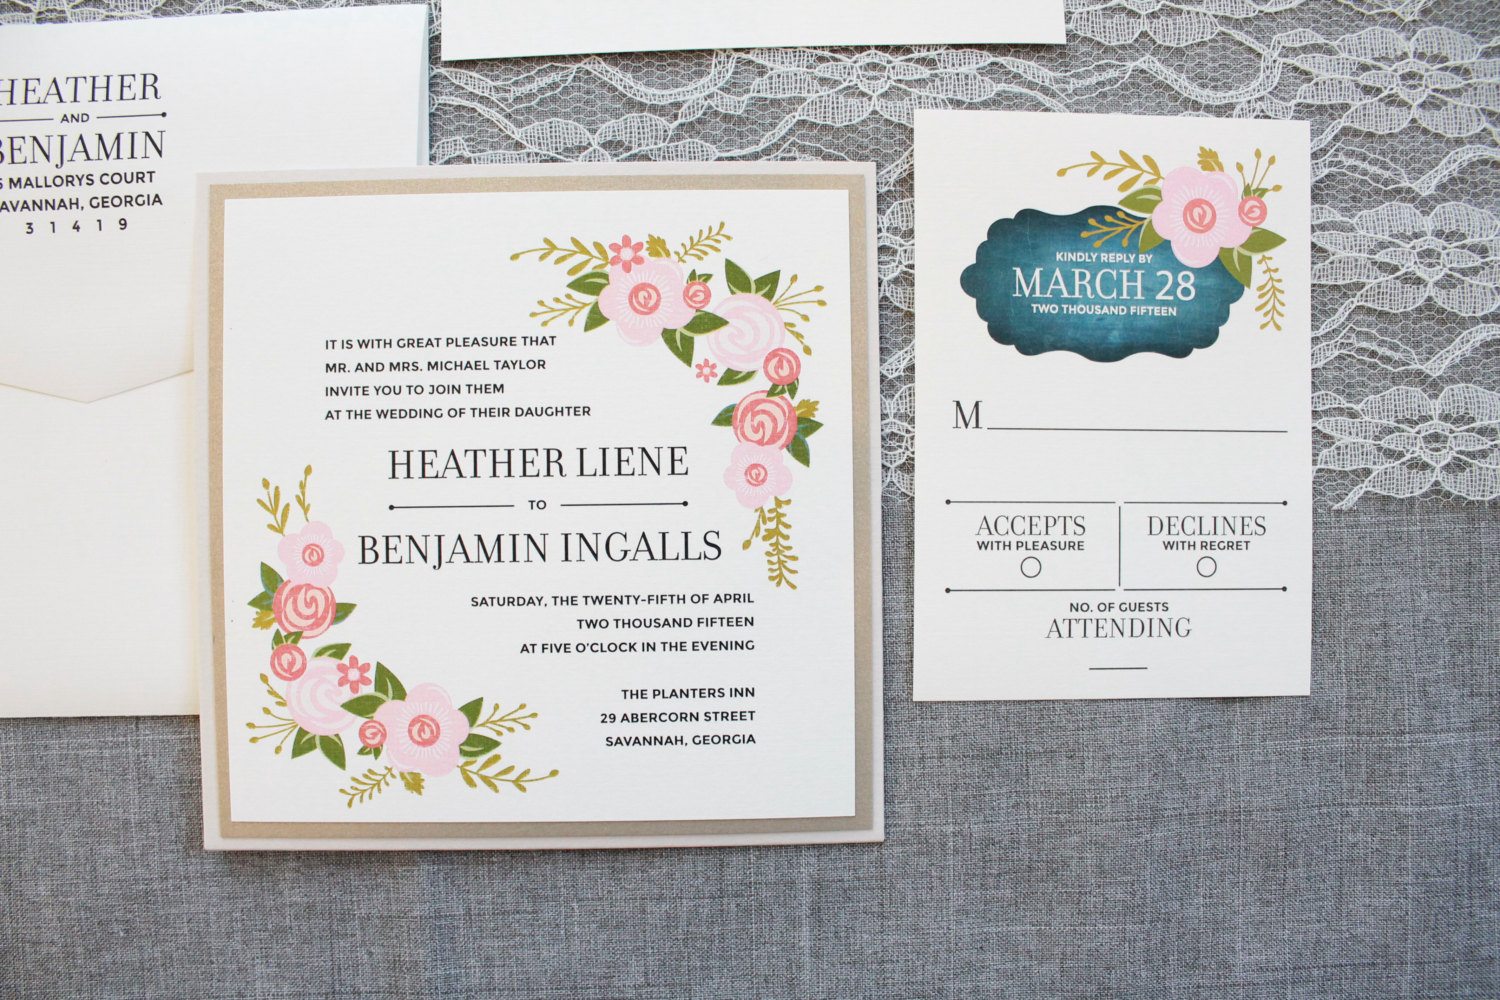 Square Wedding Invitations: What Size, Postage... Everything You ...